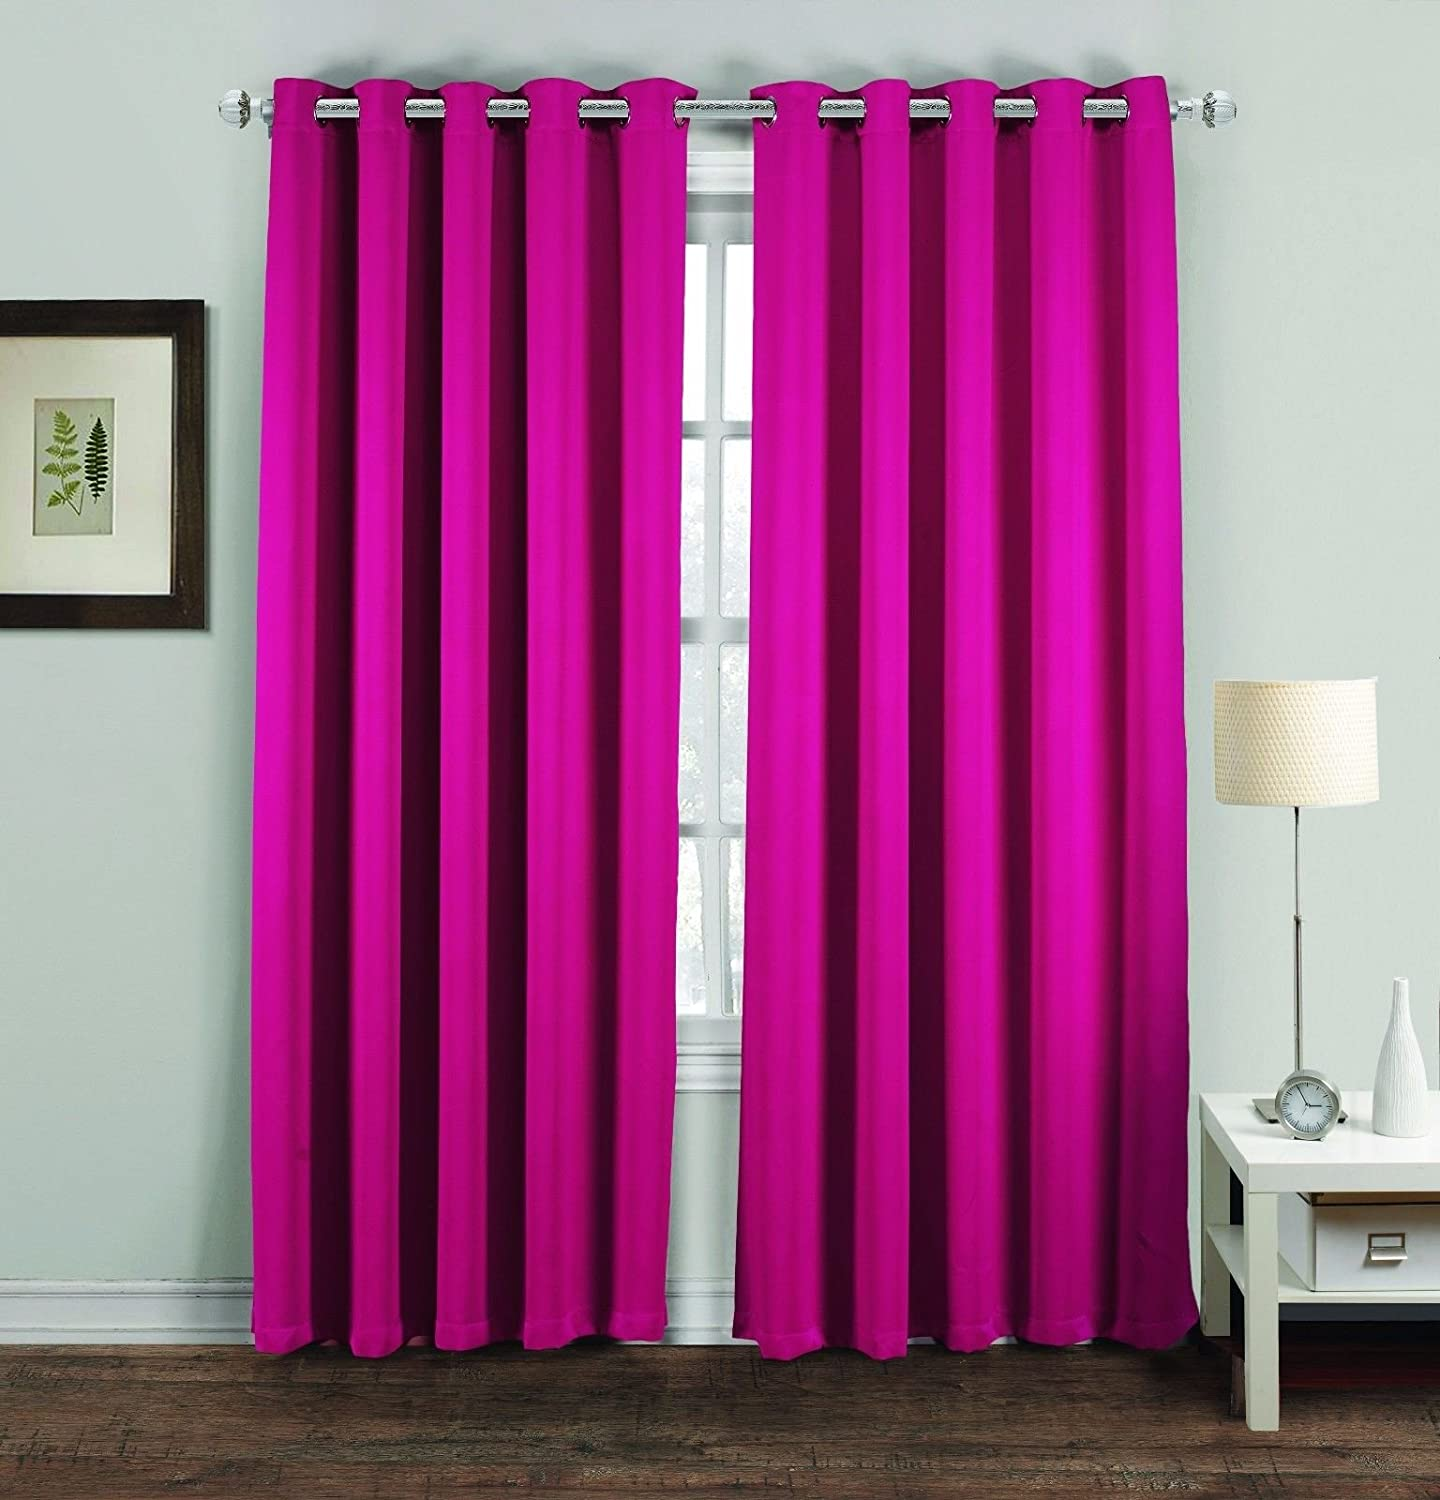 Ring Top Thermal Blackout Curtains | Ready Made Light Reducing Curtains for Plain Room Darkening Living Rooms Nursery Bedrooms |46 x 54, Chocolate Midlands Beddings